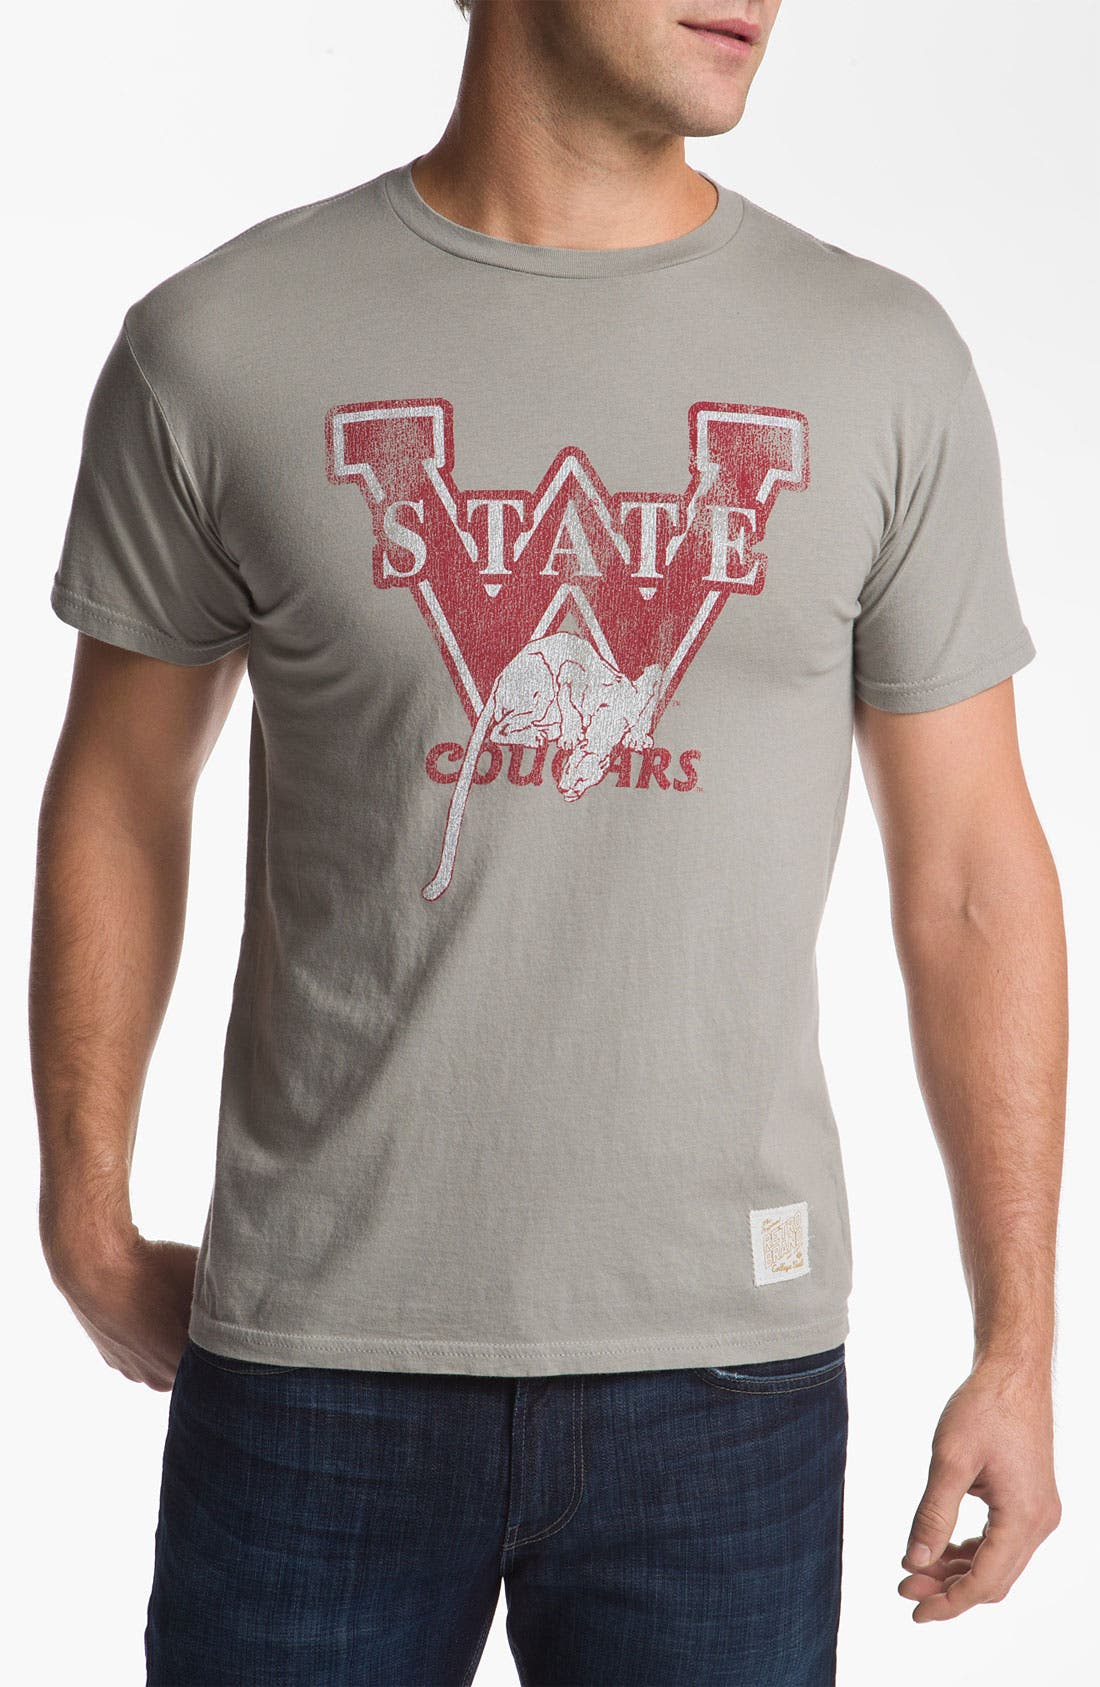 Alternate Image 1 Selected - The Original Retro Brand 'Washington State Cougars' T-Shirt